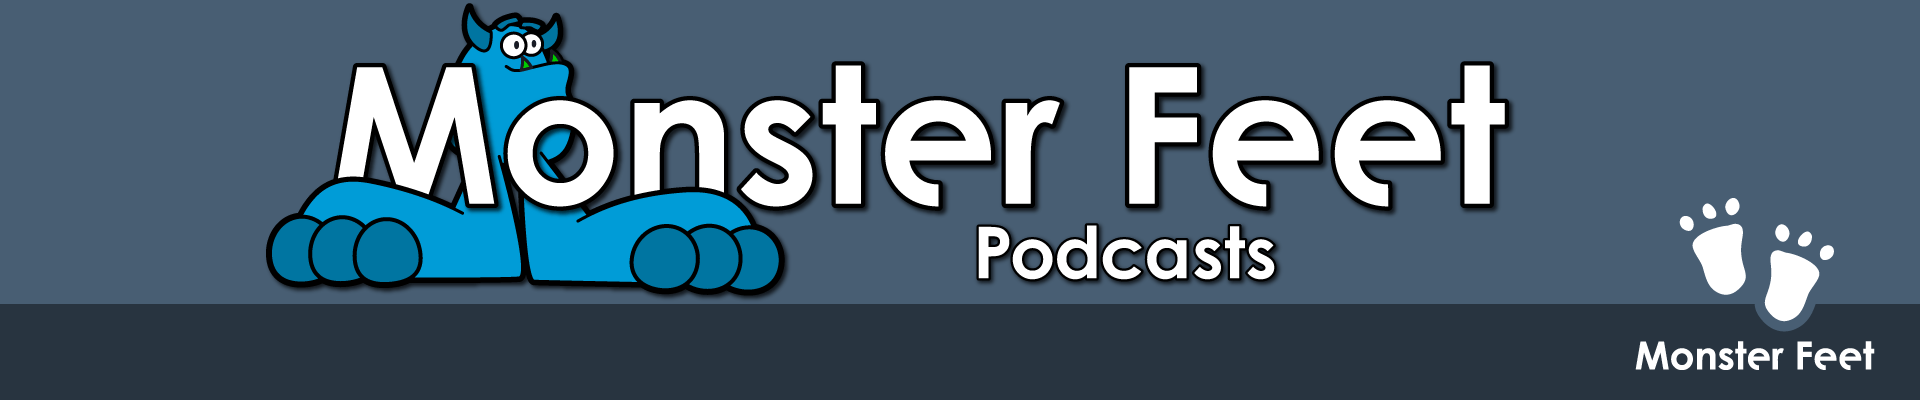 Monster Feet podcasts